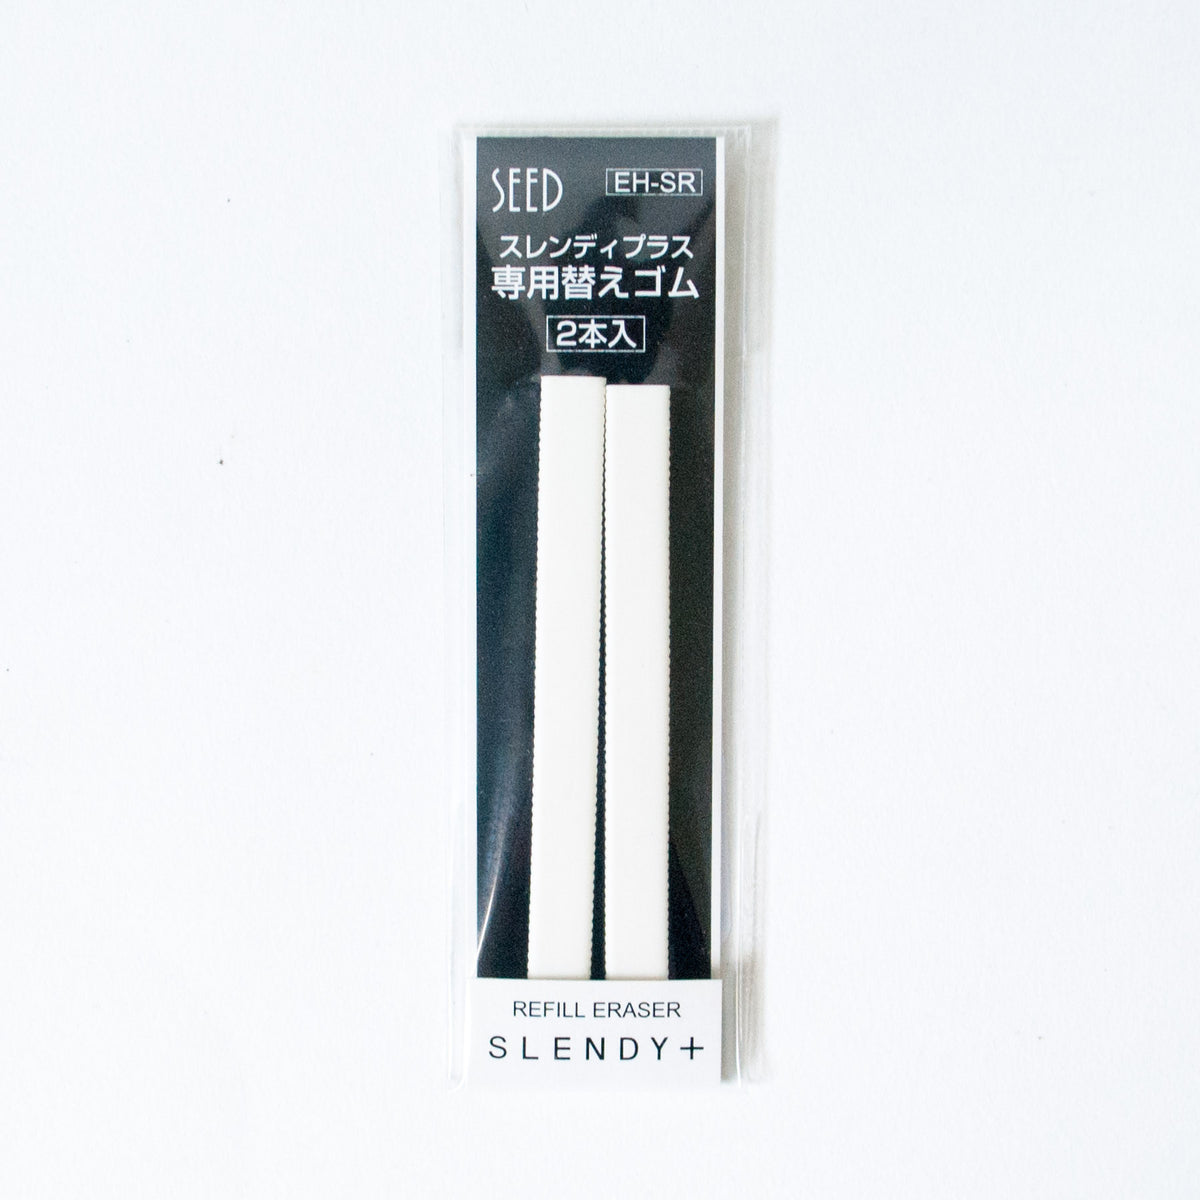 Slendy+ Steel Body Eraser Refill